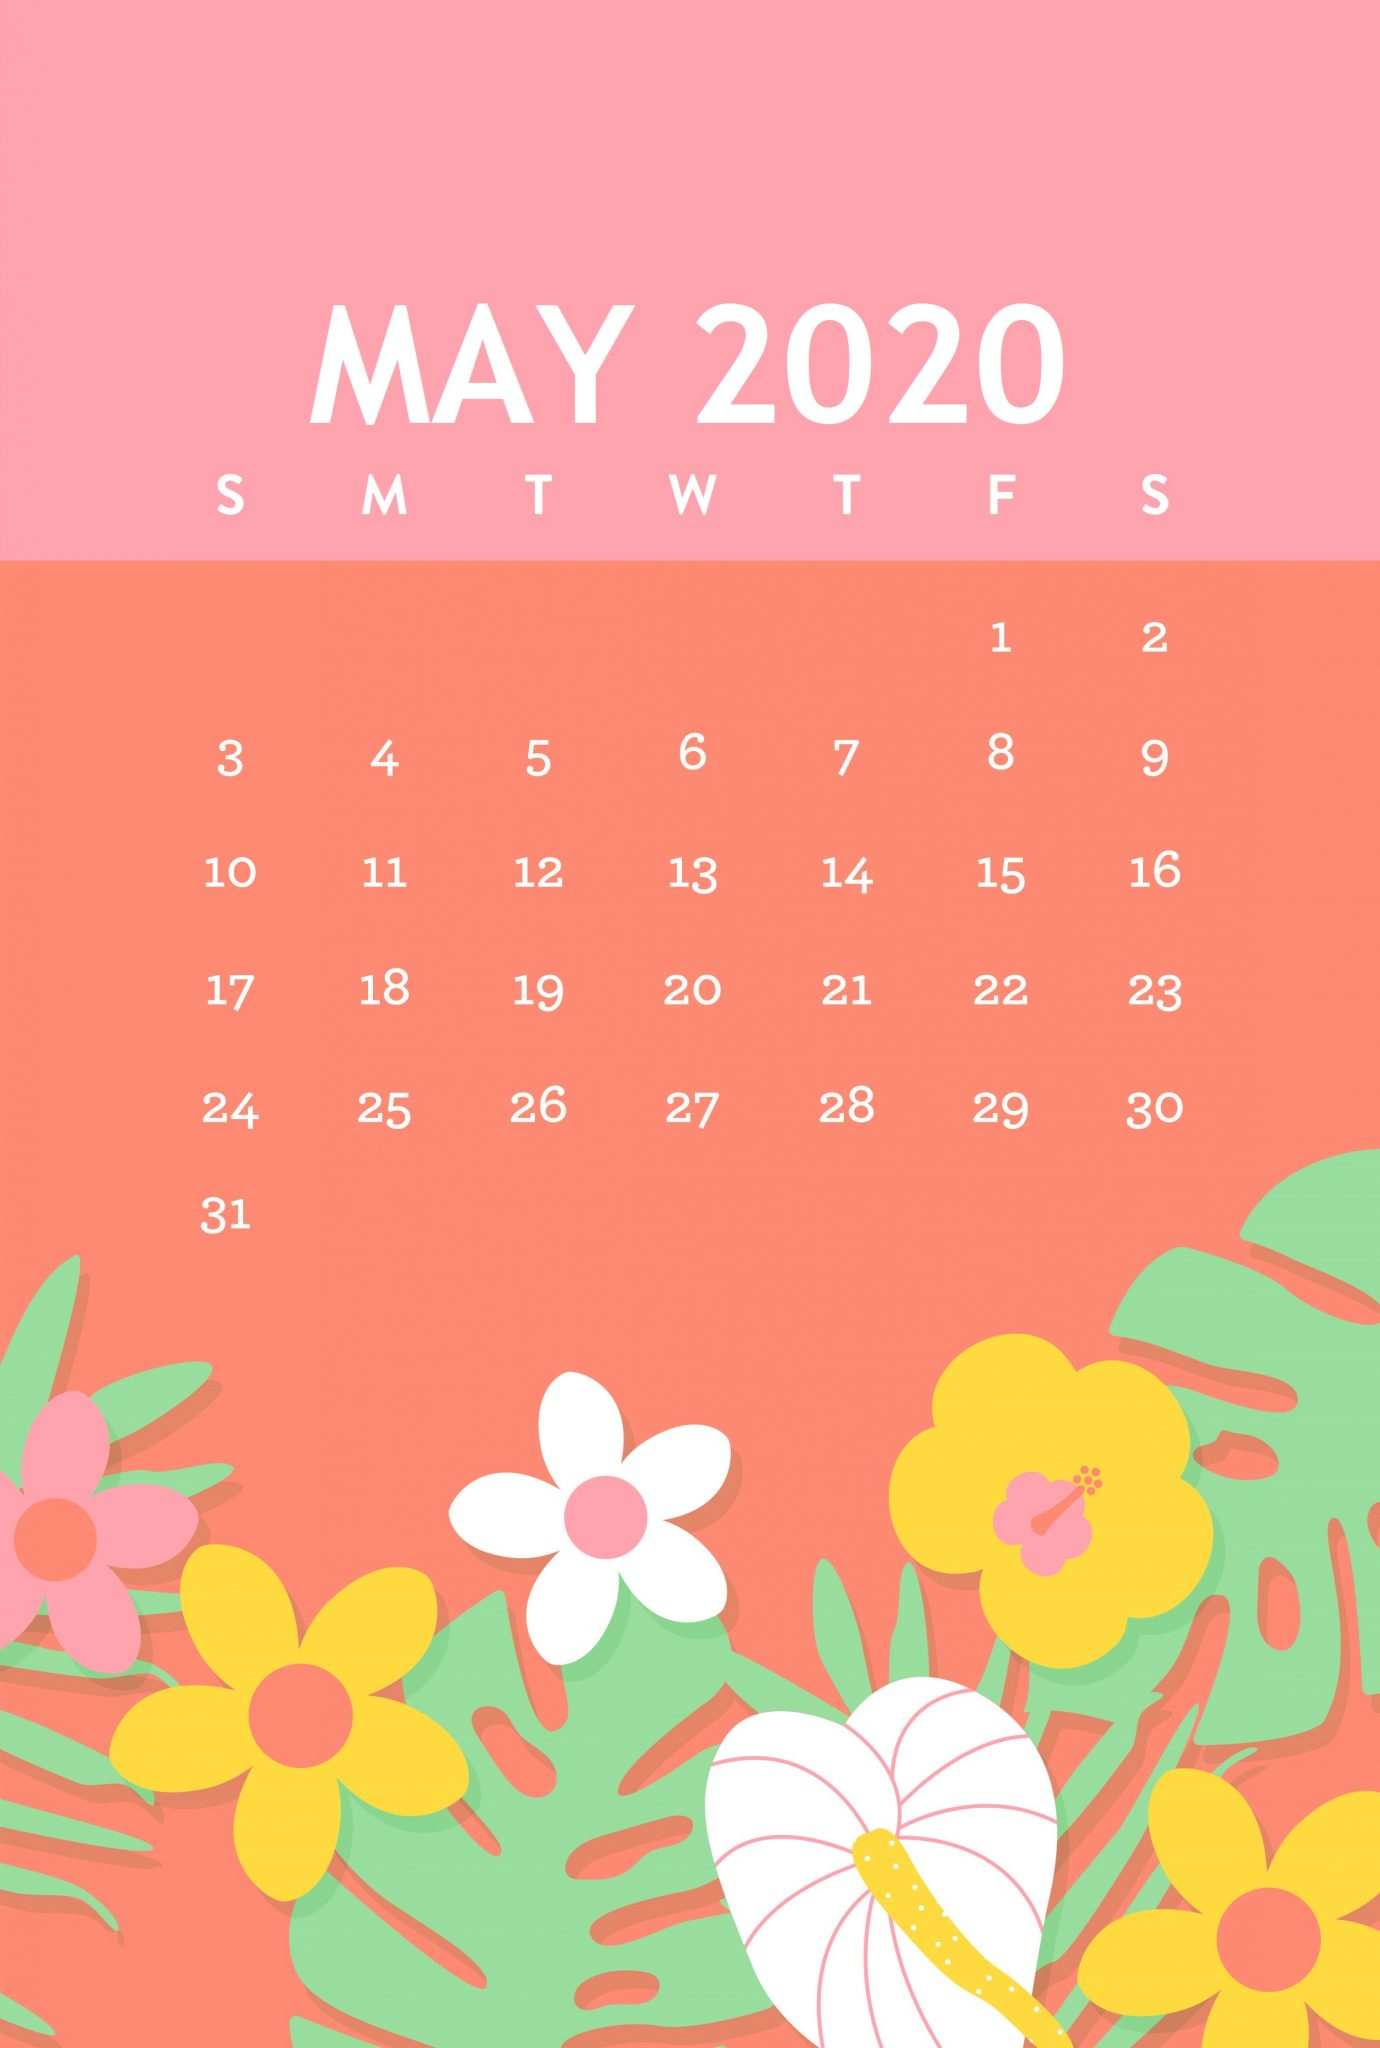 Cute May 2020 iPhone Background